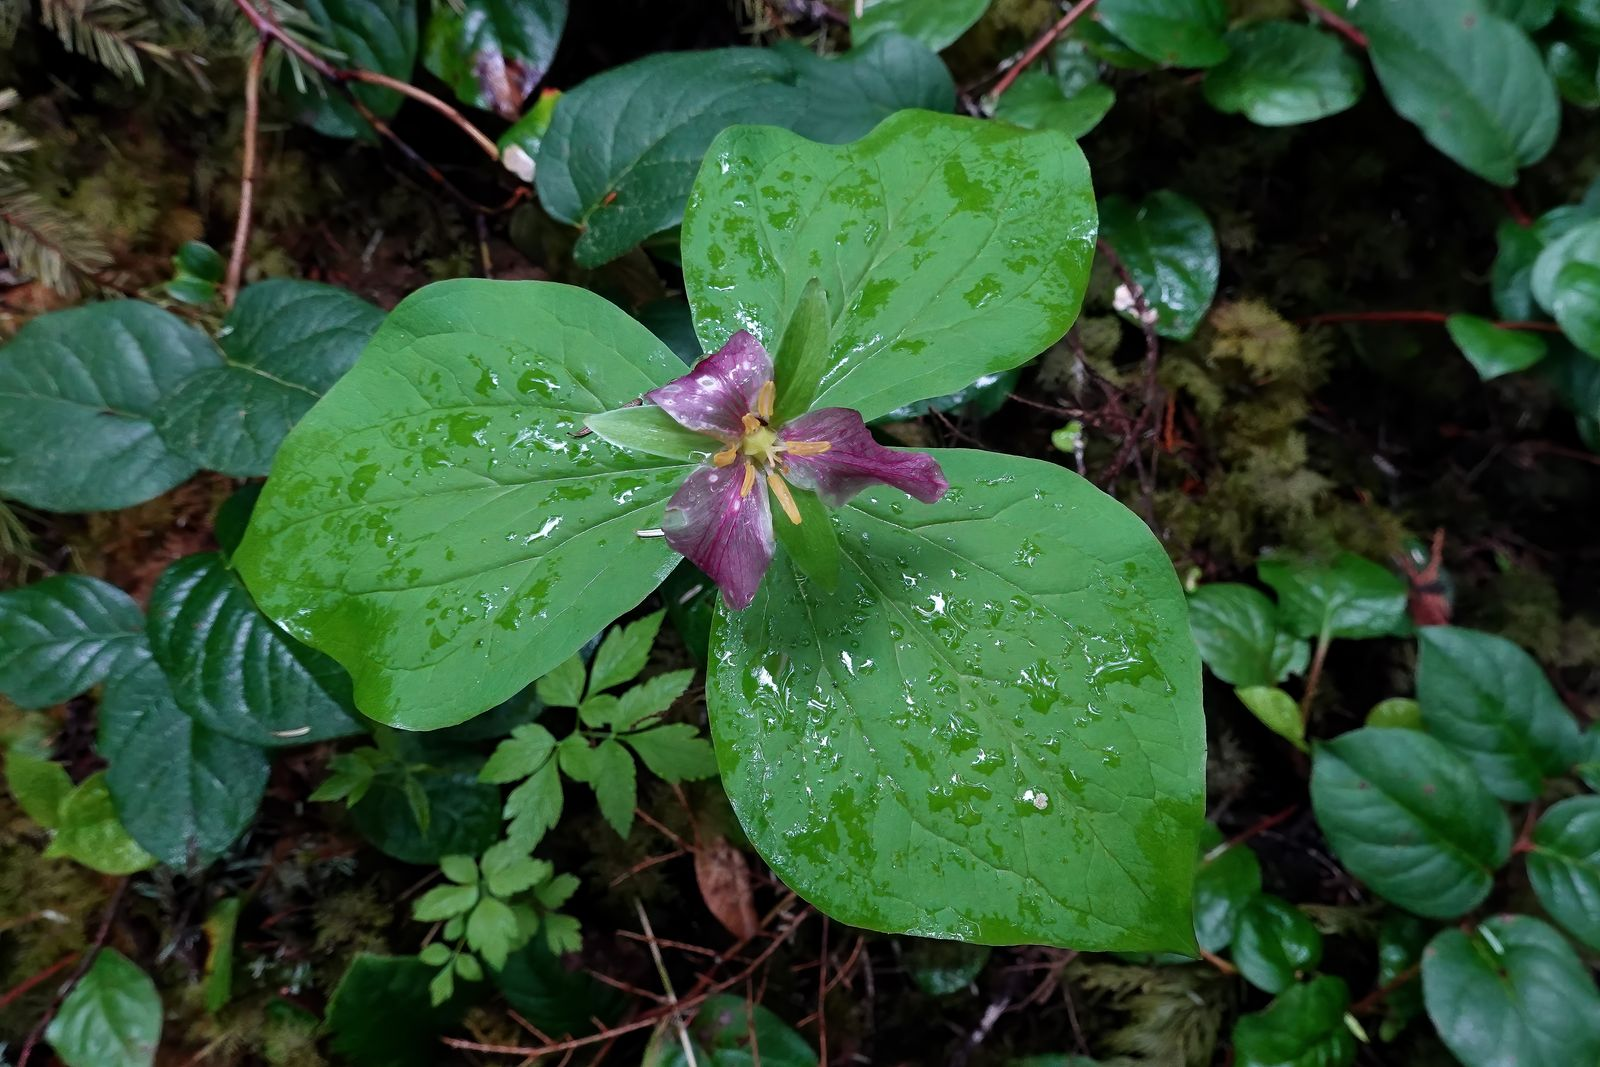 Another pretty Trillium flower